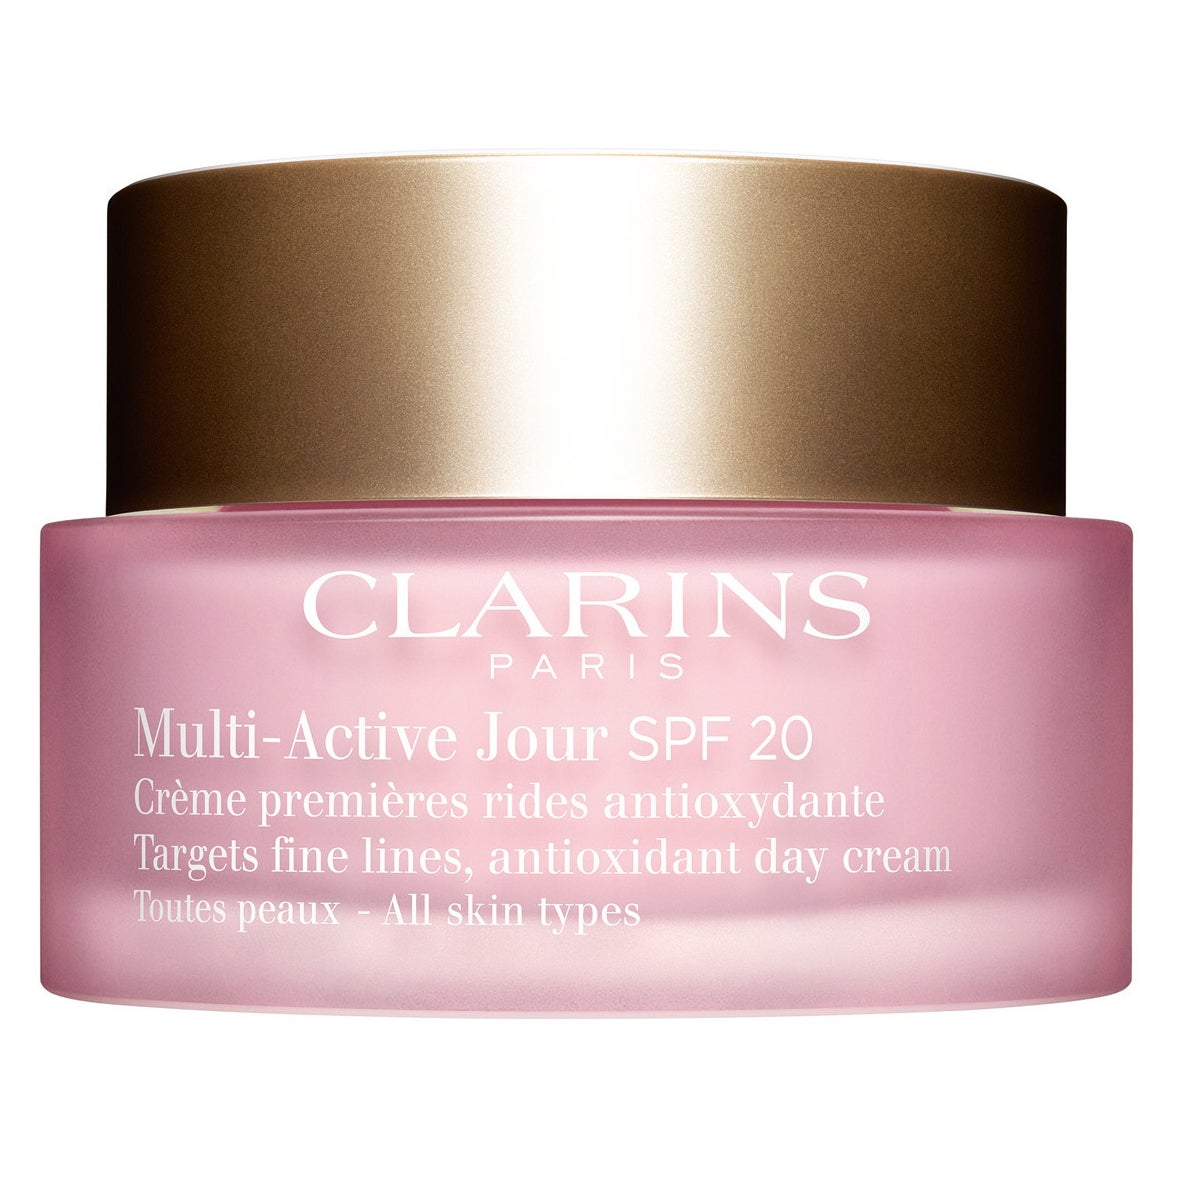 Multi-Active Jour SPF 20 for All Skin Types, 50 ml Clarins Dagkräm